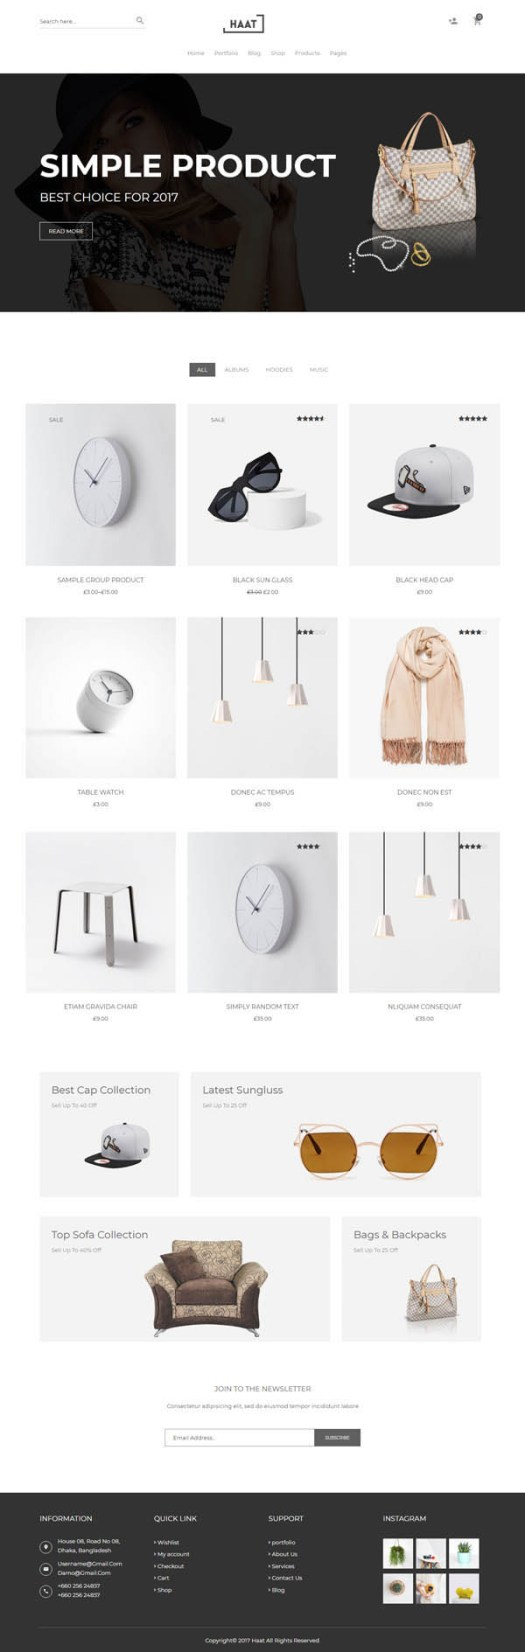 Haat – Minimalist WooCommerce WordPress Theme